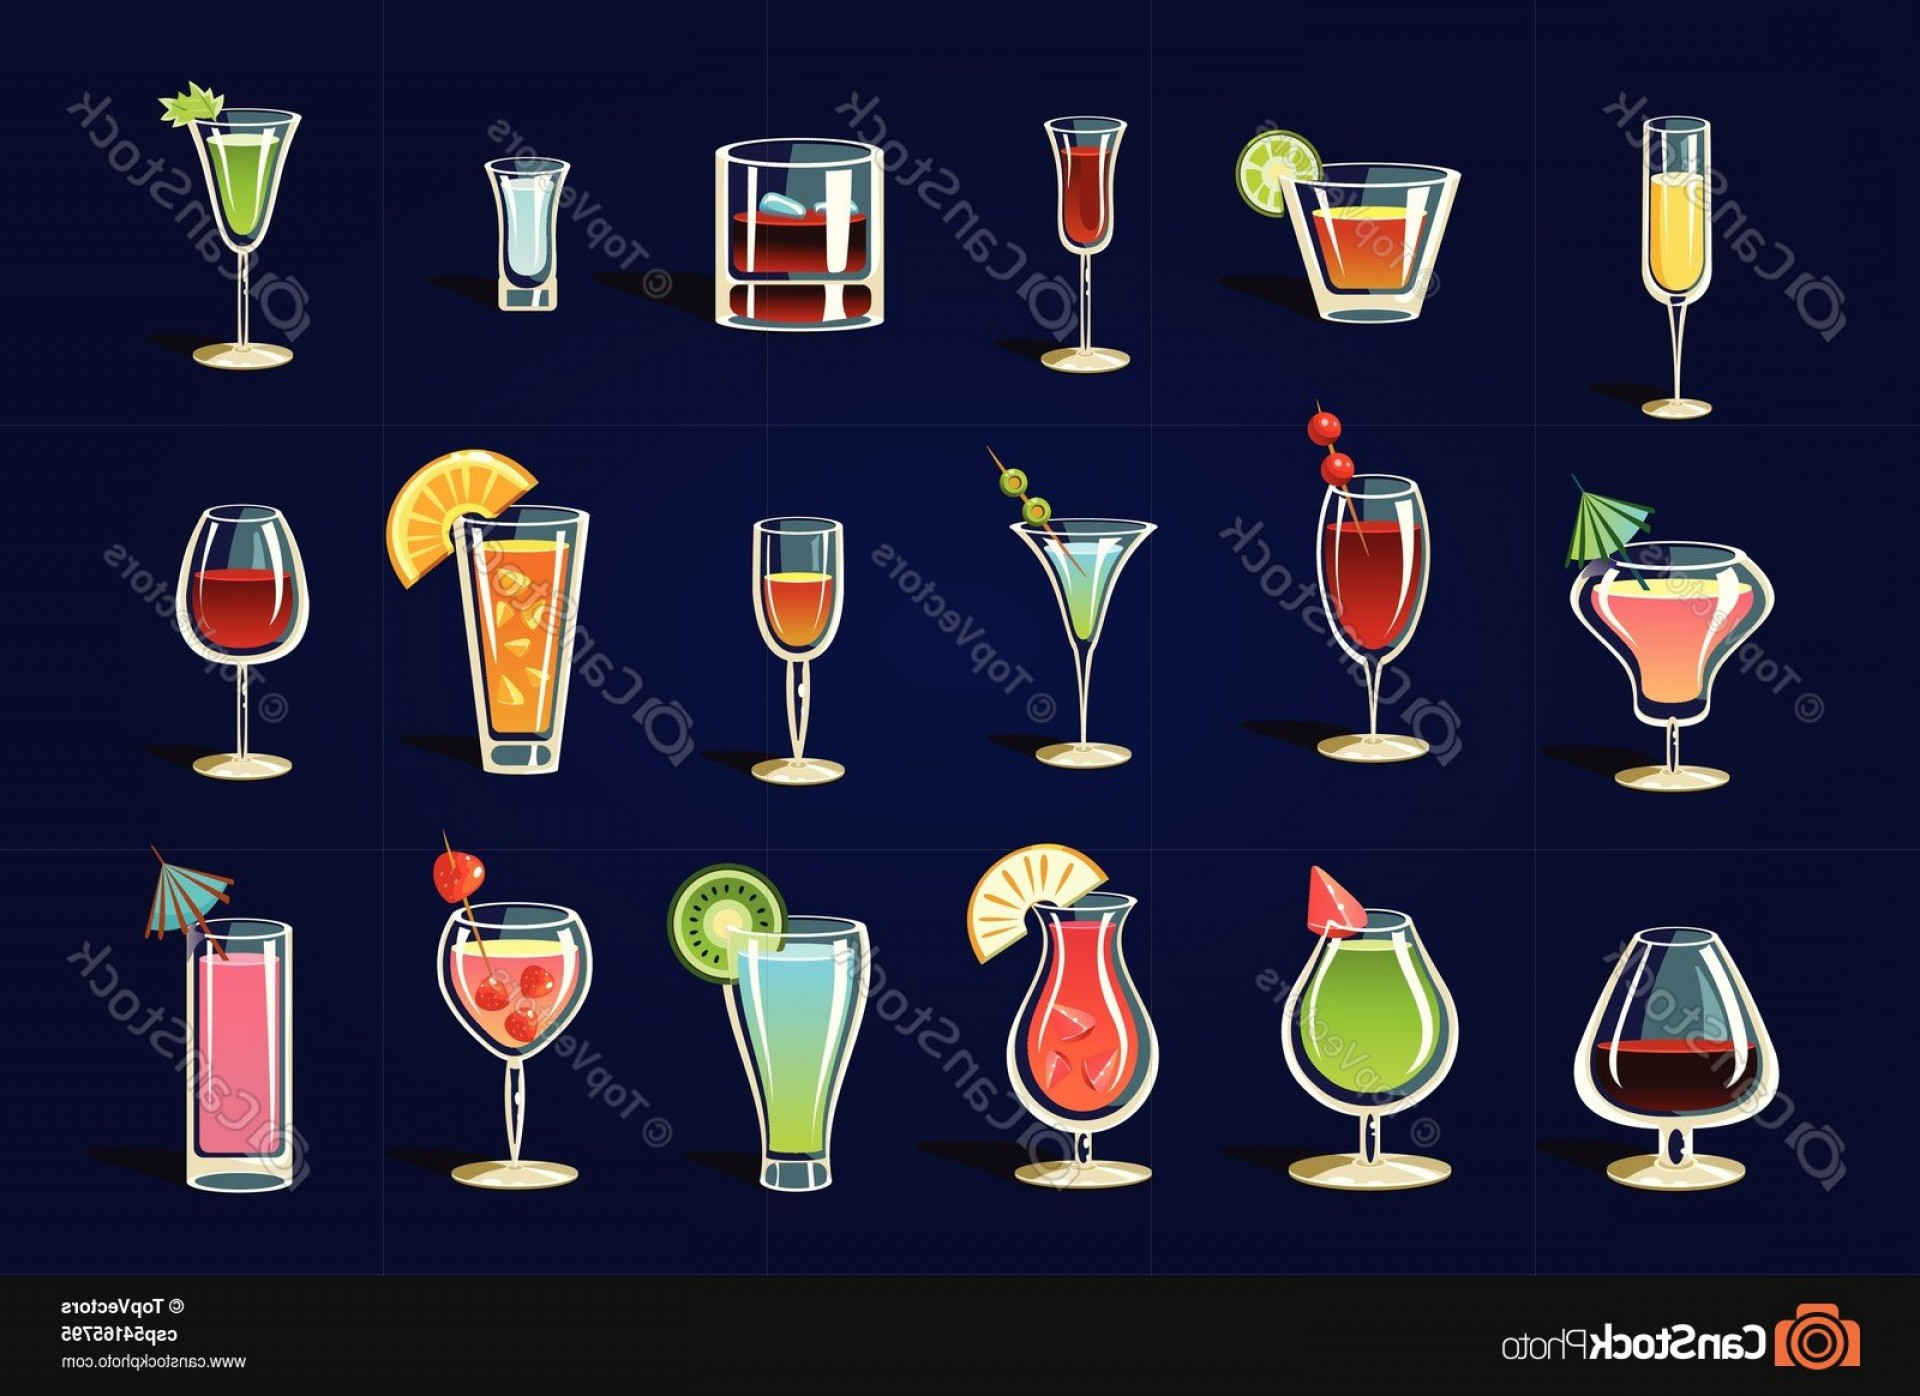 Glasses Vector Flat: Flat Vector Set With Different